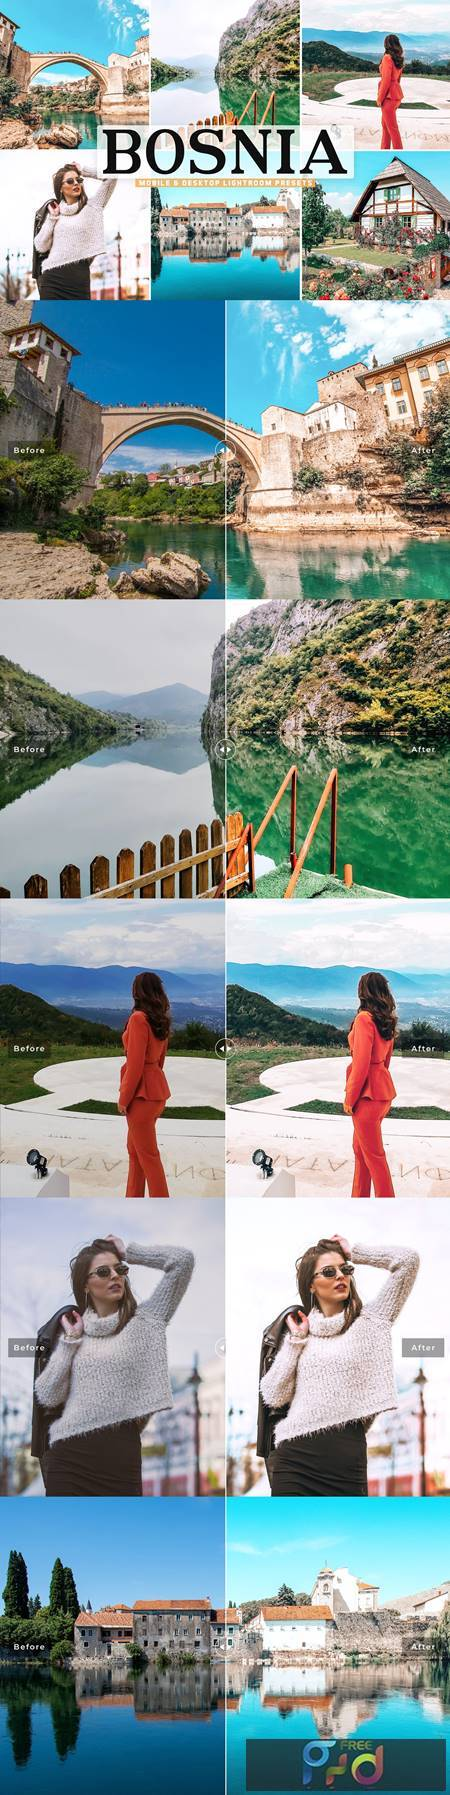 Bosnia Pro Lightroom Presets 5478362 1